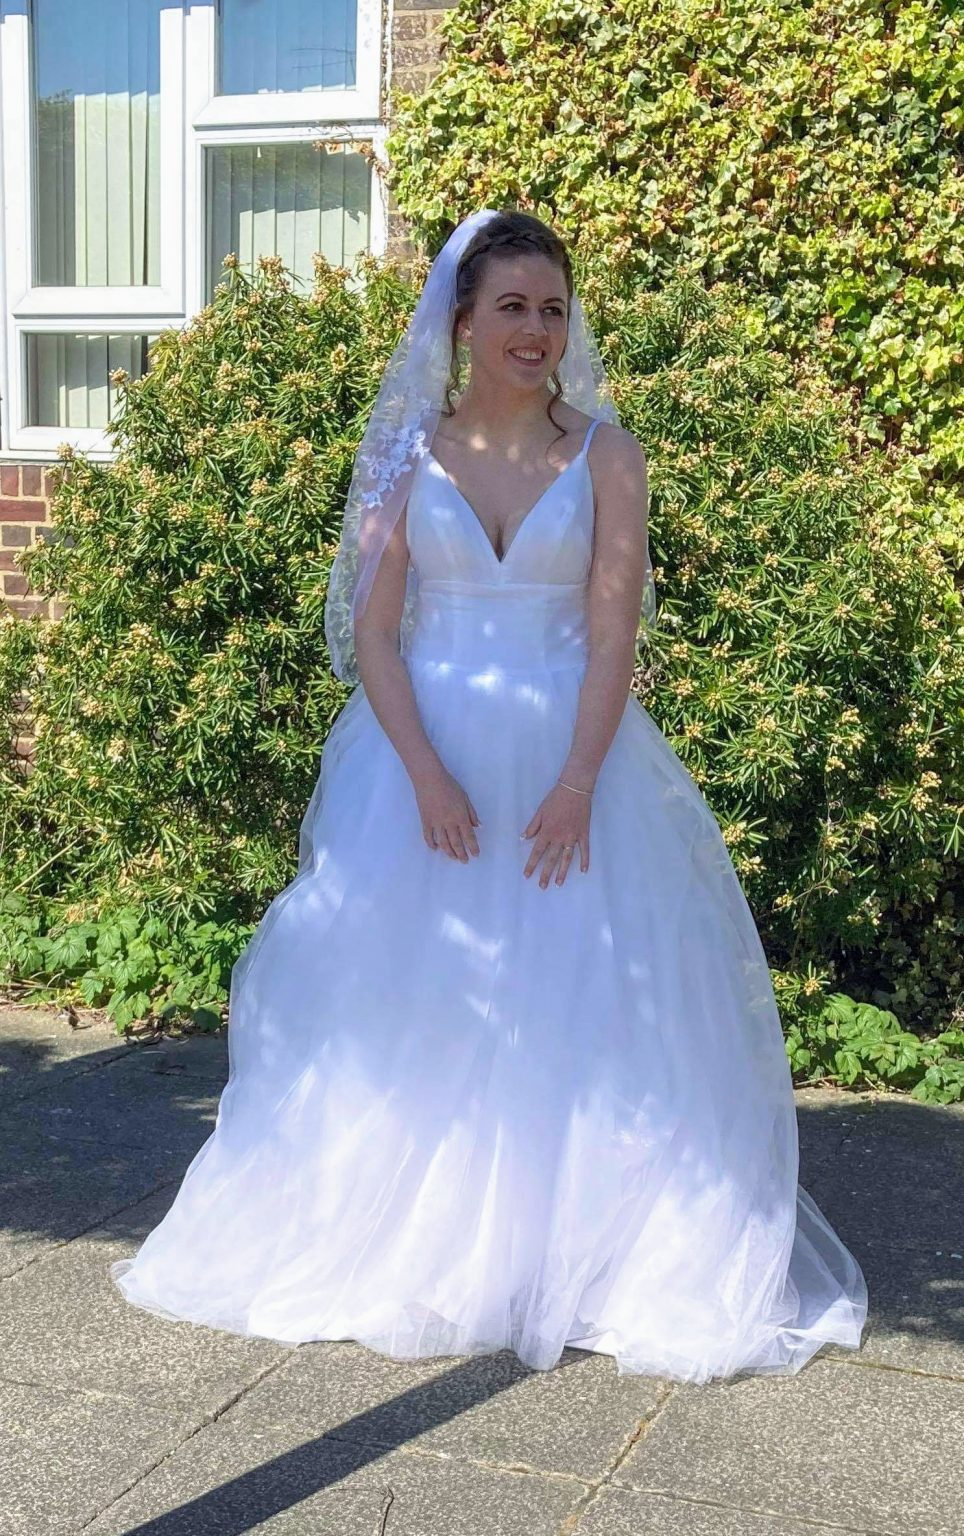 Young woman in her wedding dress about to get married at a COVID wedding